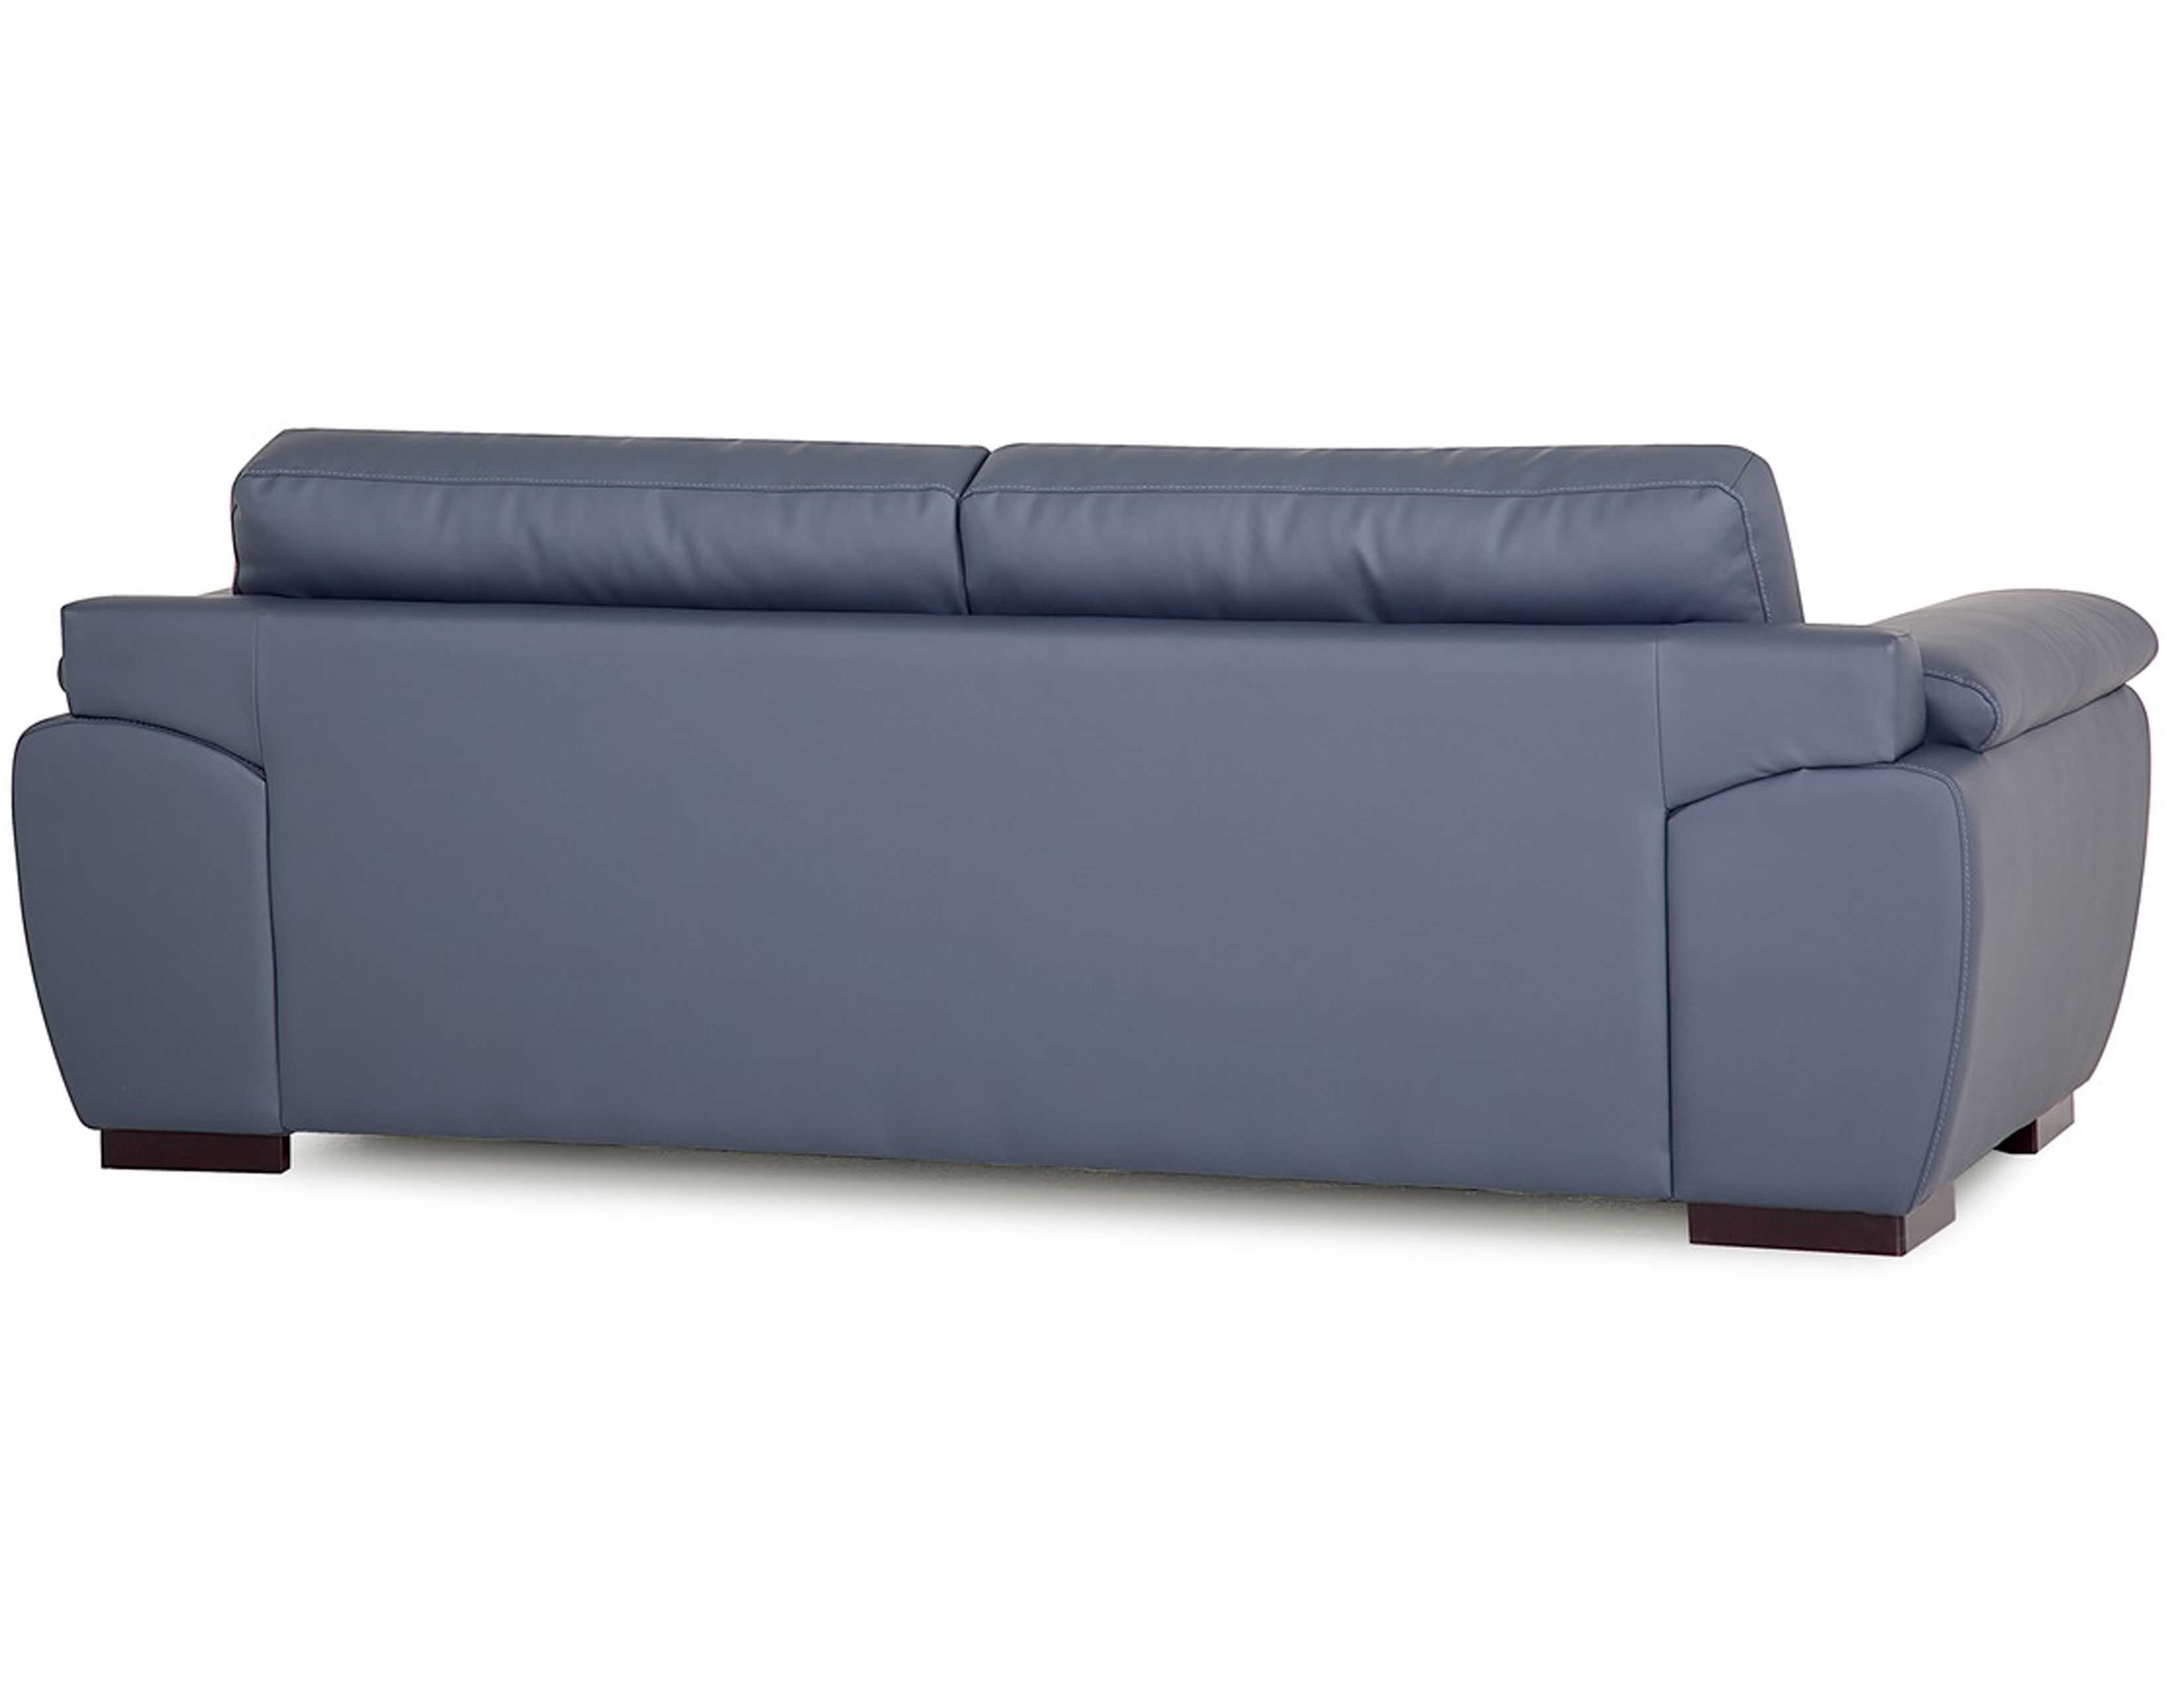 Tremendous Long Beach 77627 70627 Sofa Collection 350 Sofas And Caraccident5 Cool Chair Designs And Ideas Caraccident5Info